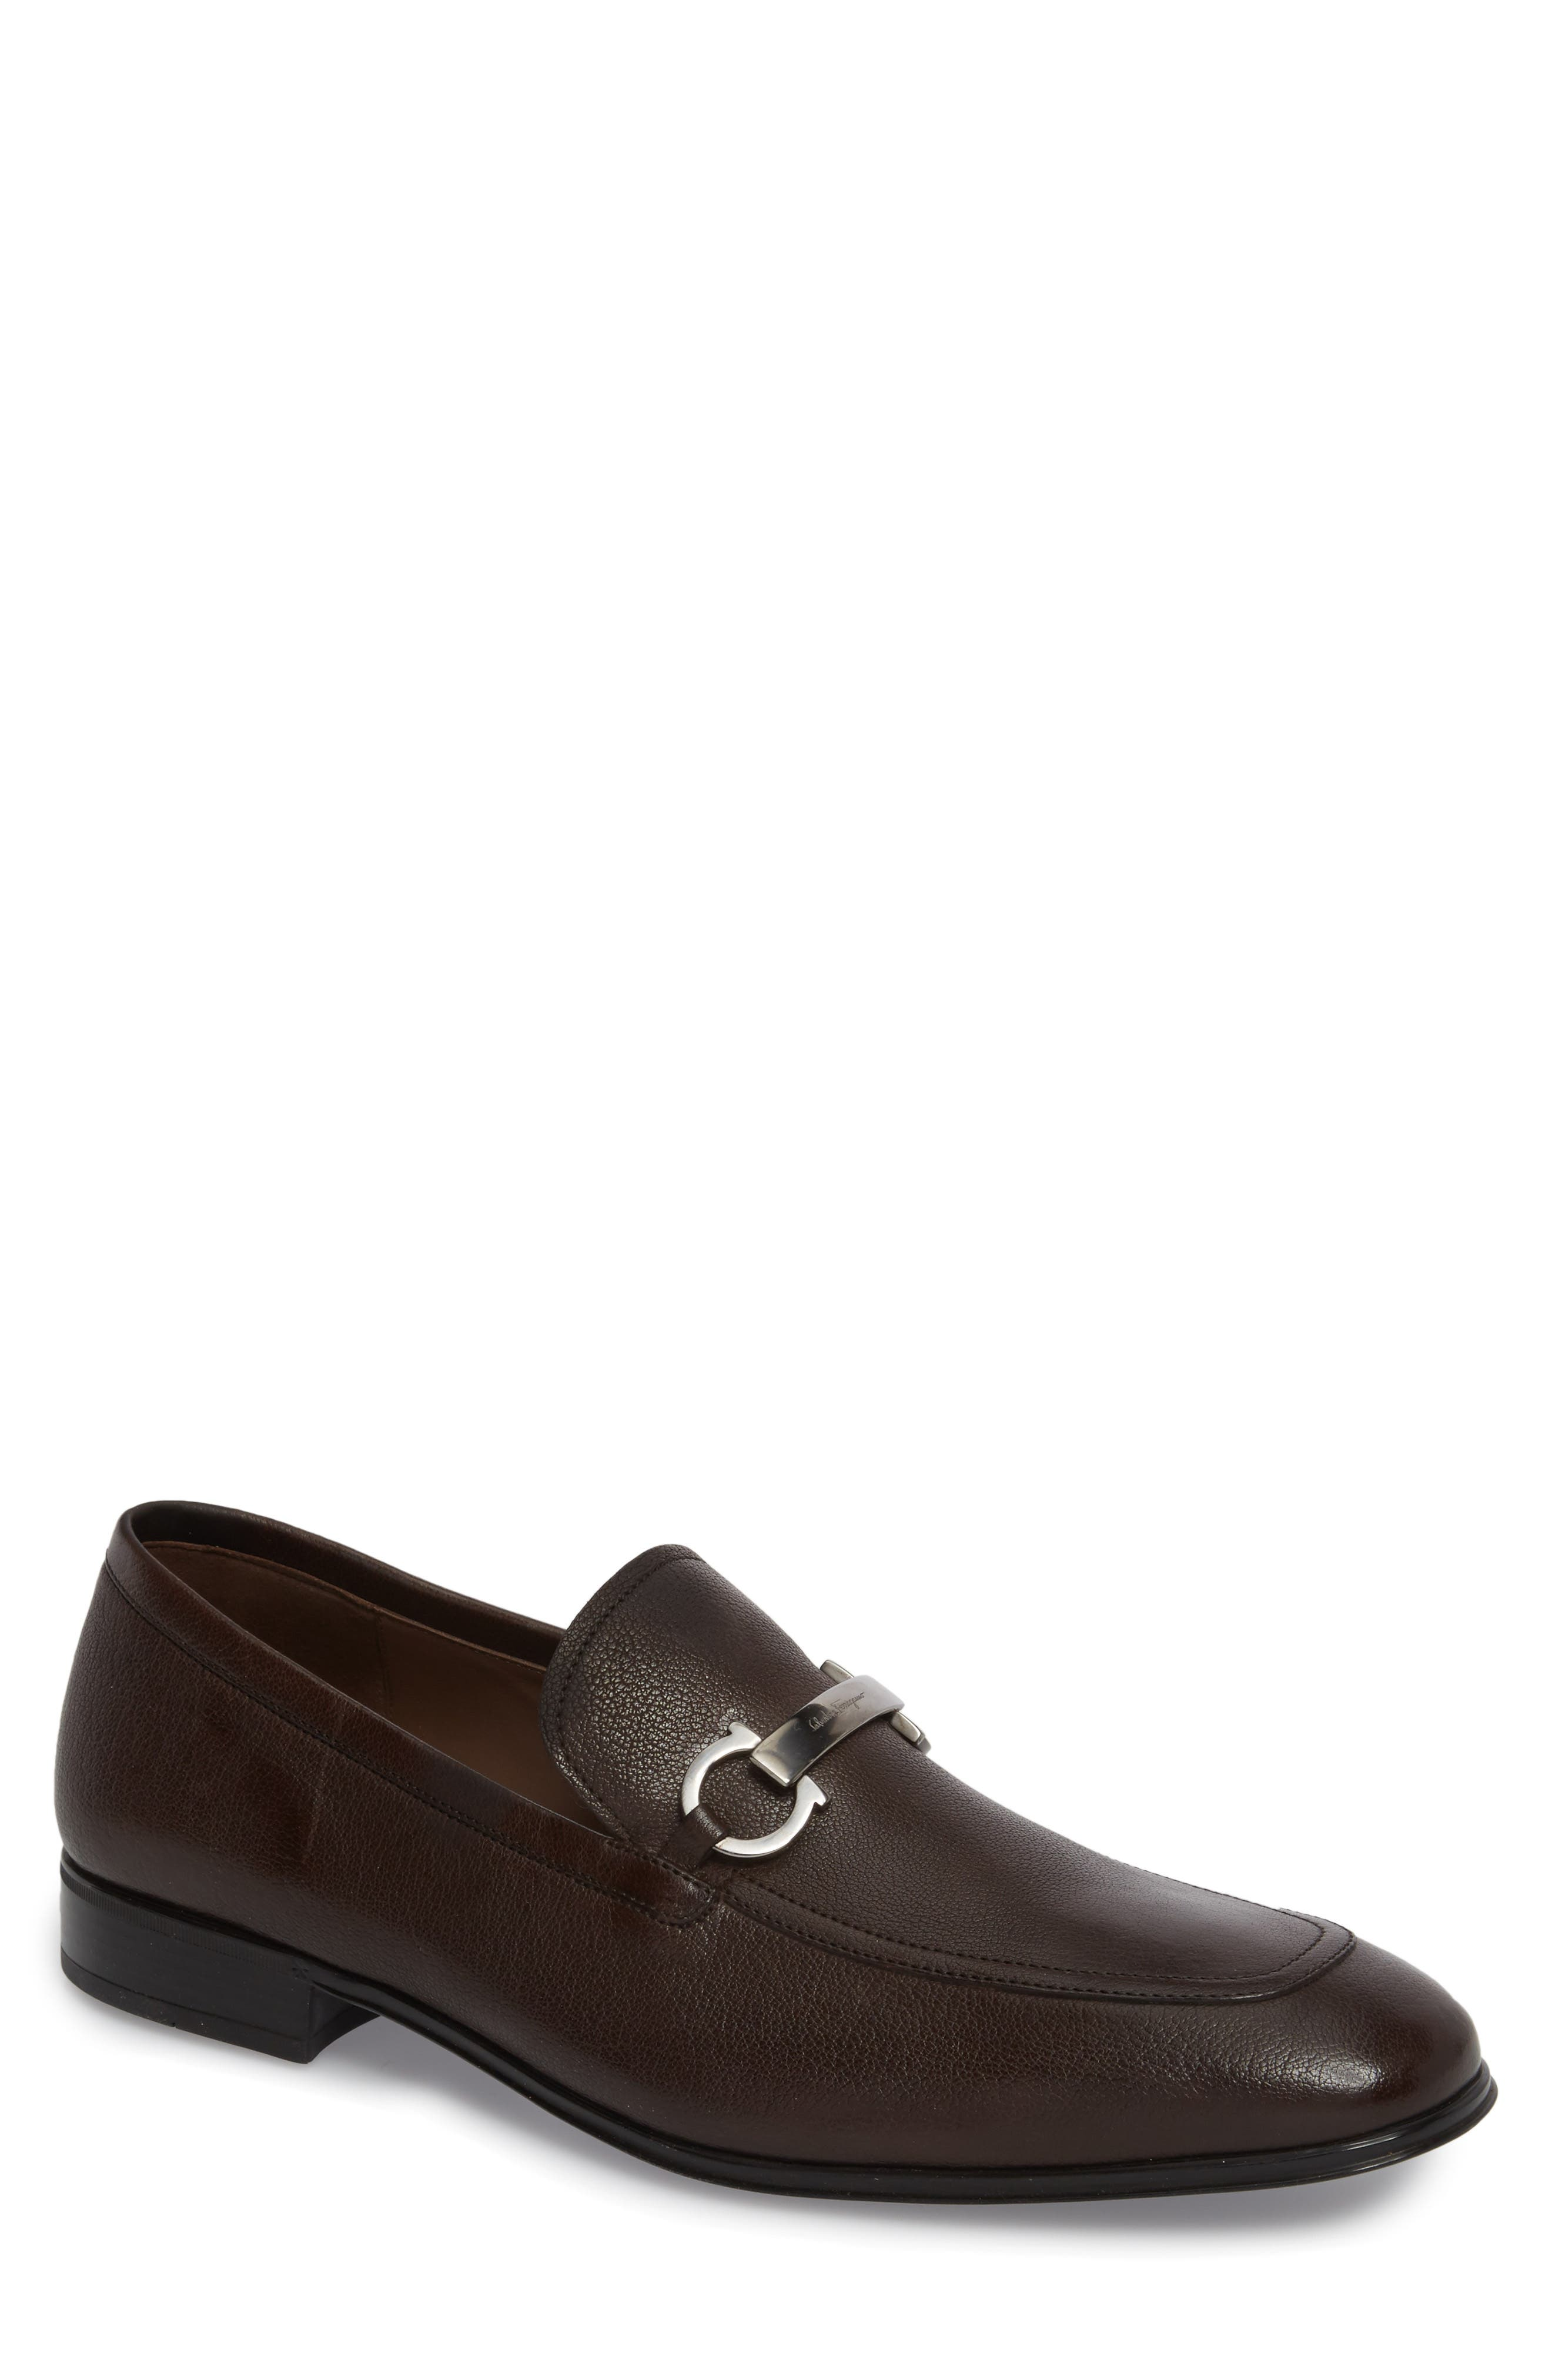 Borges Apron Toe Loafer,                         Main,                         color, Brown Leather